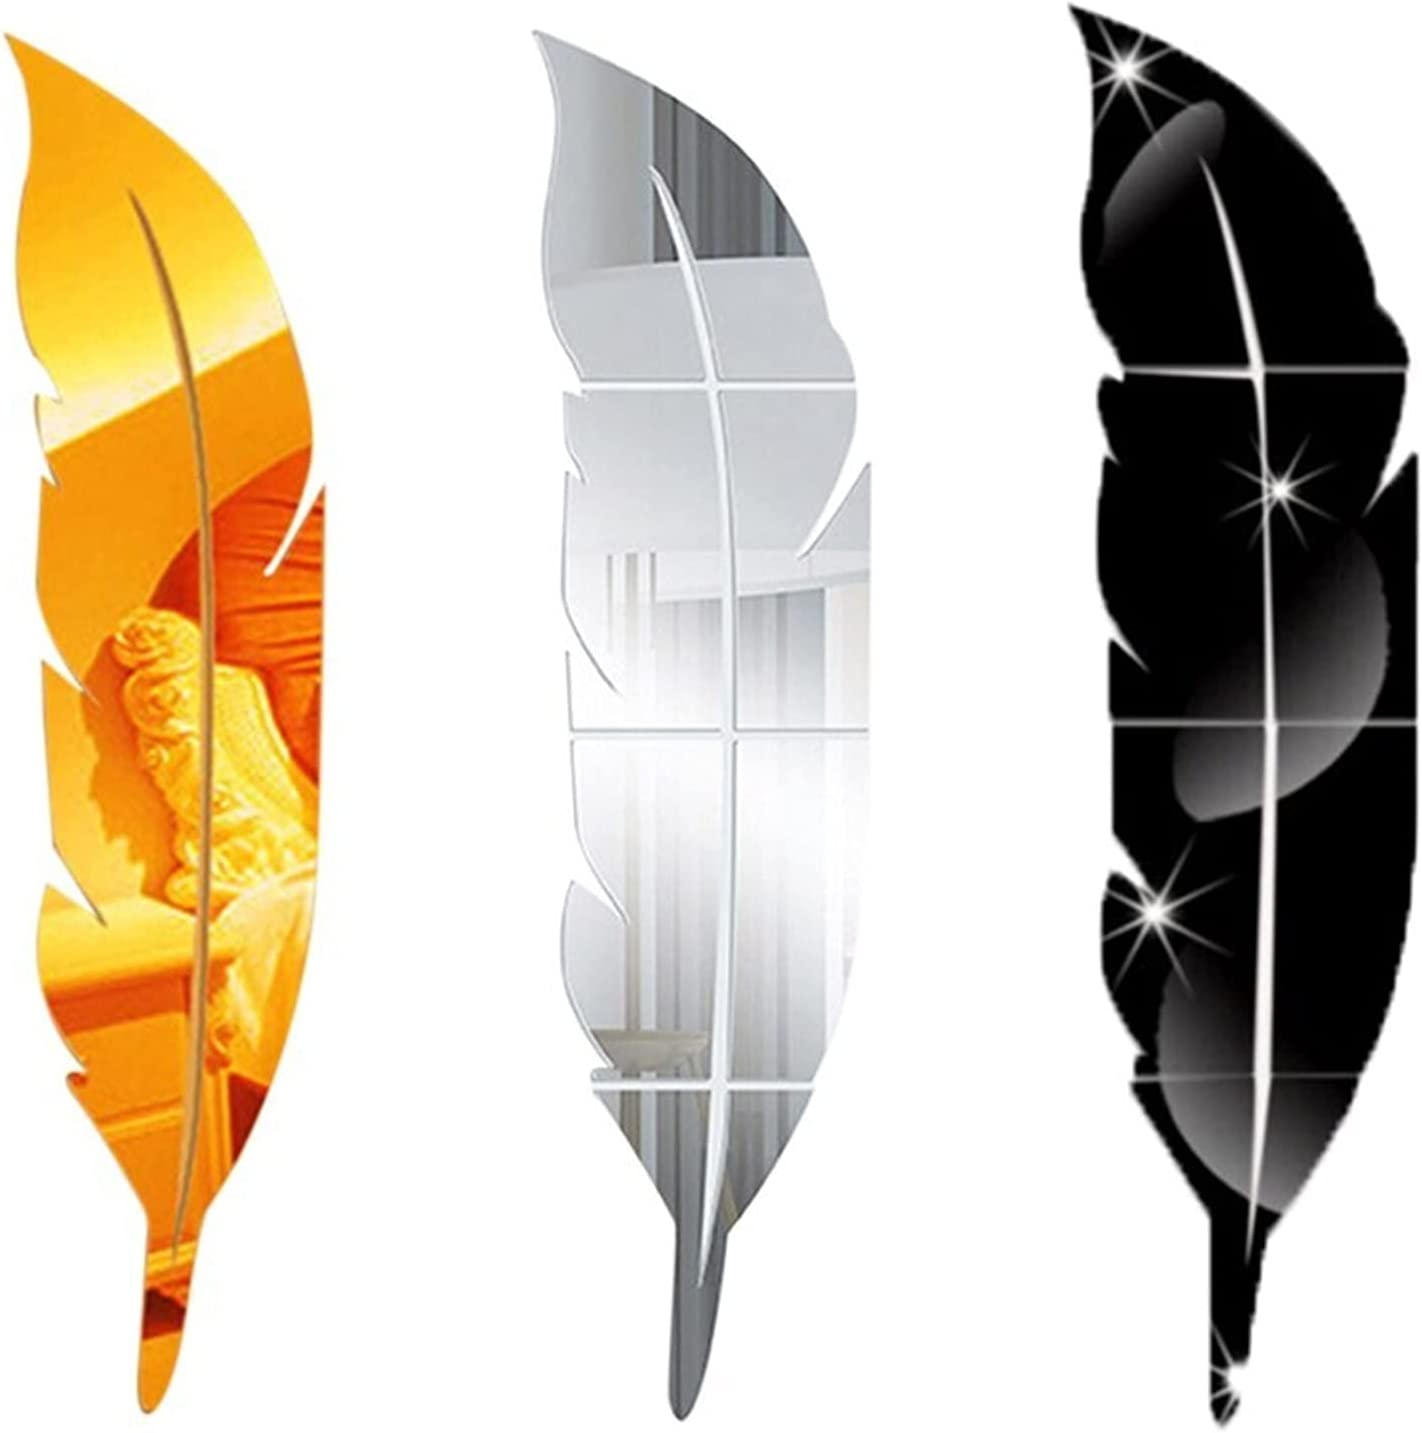 U D HLIAN Our shop most popular Large Feather Decoration Mirror Sale SALE% OFF Self-Adhe Acrylic Home